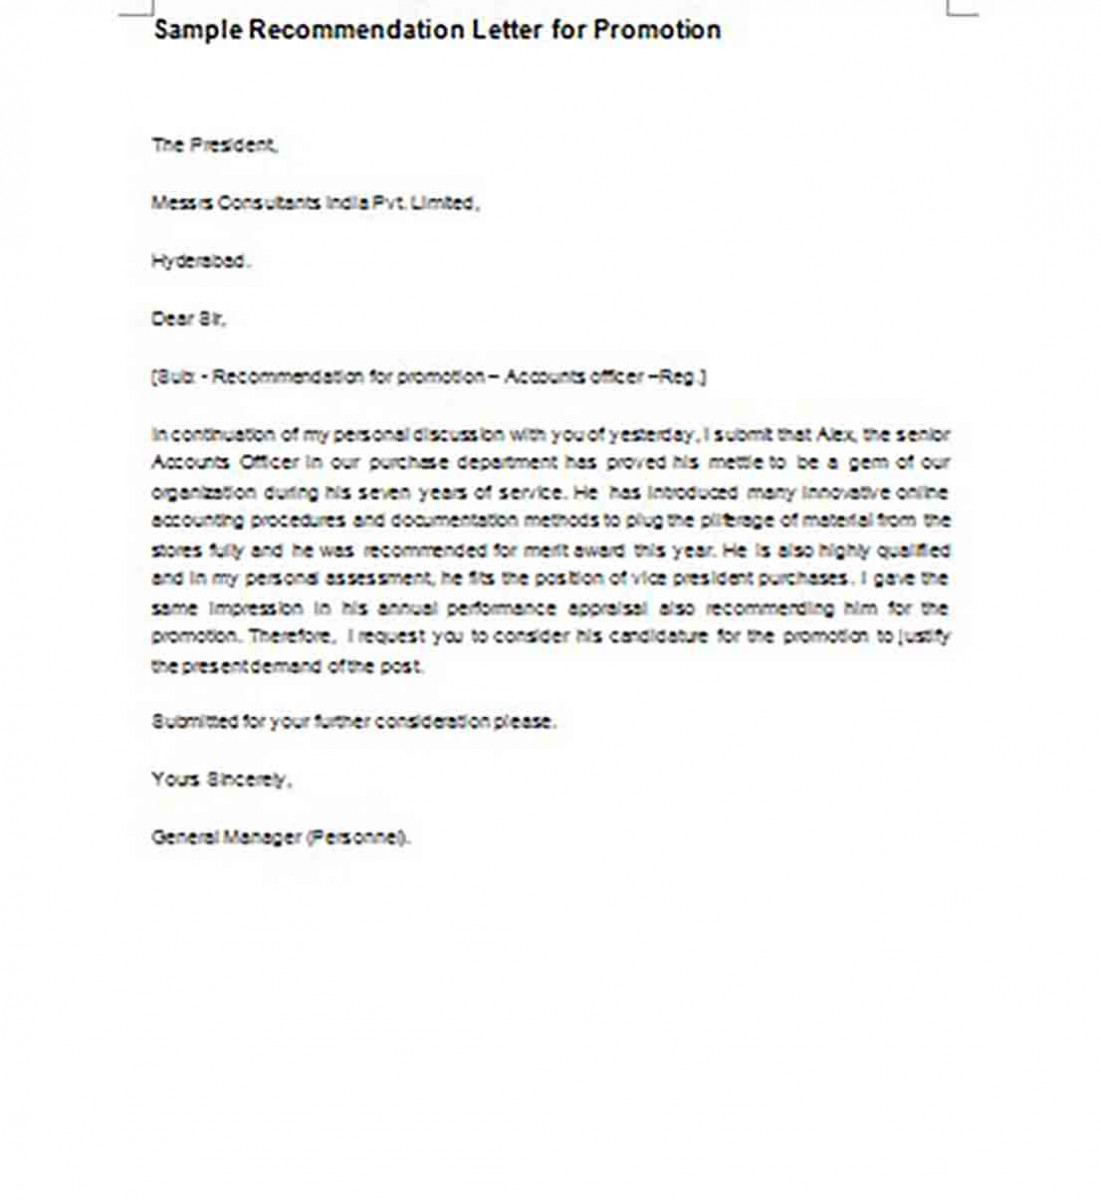 Recommendation Letter for Promotion templates Example